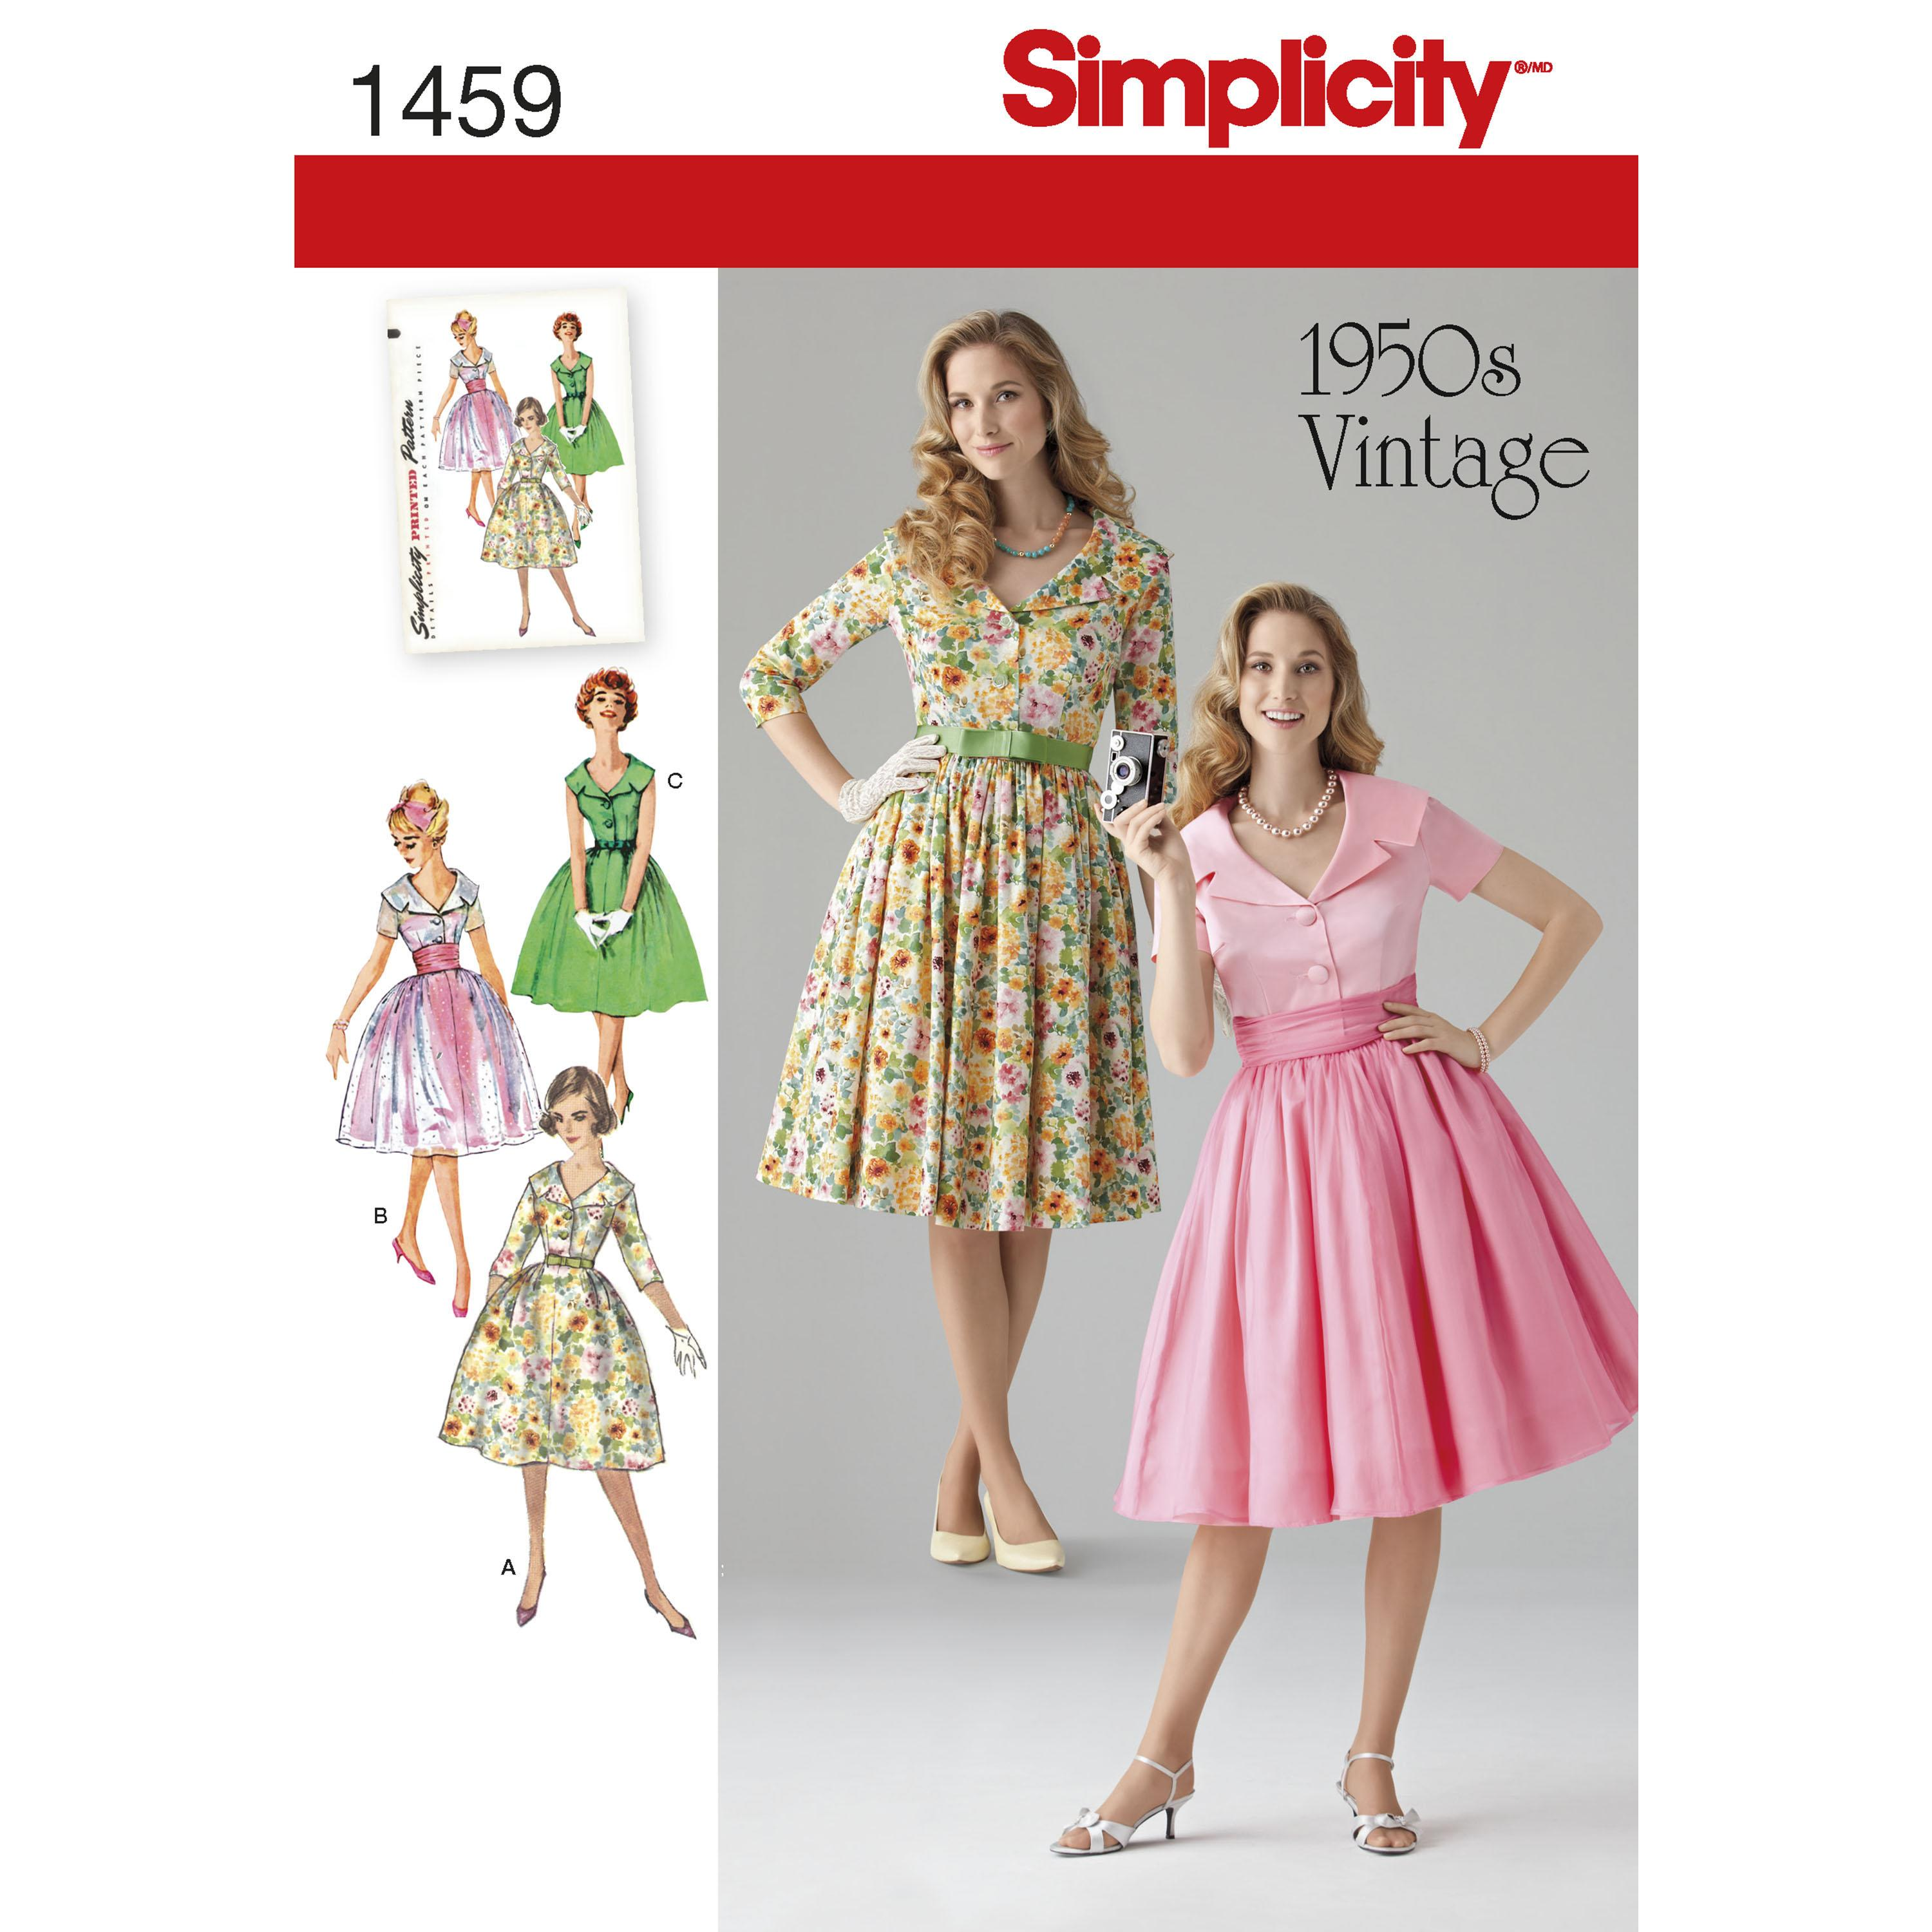 Simplicity S1459 Women's and Petite 1950's Vintage Dress